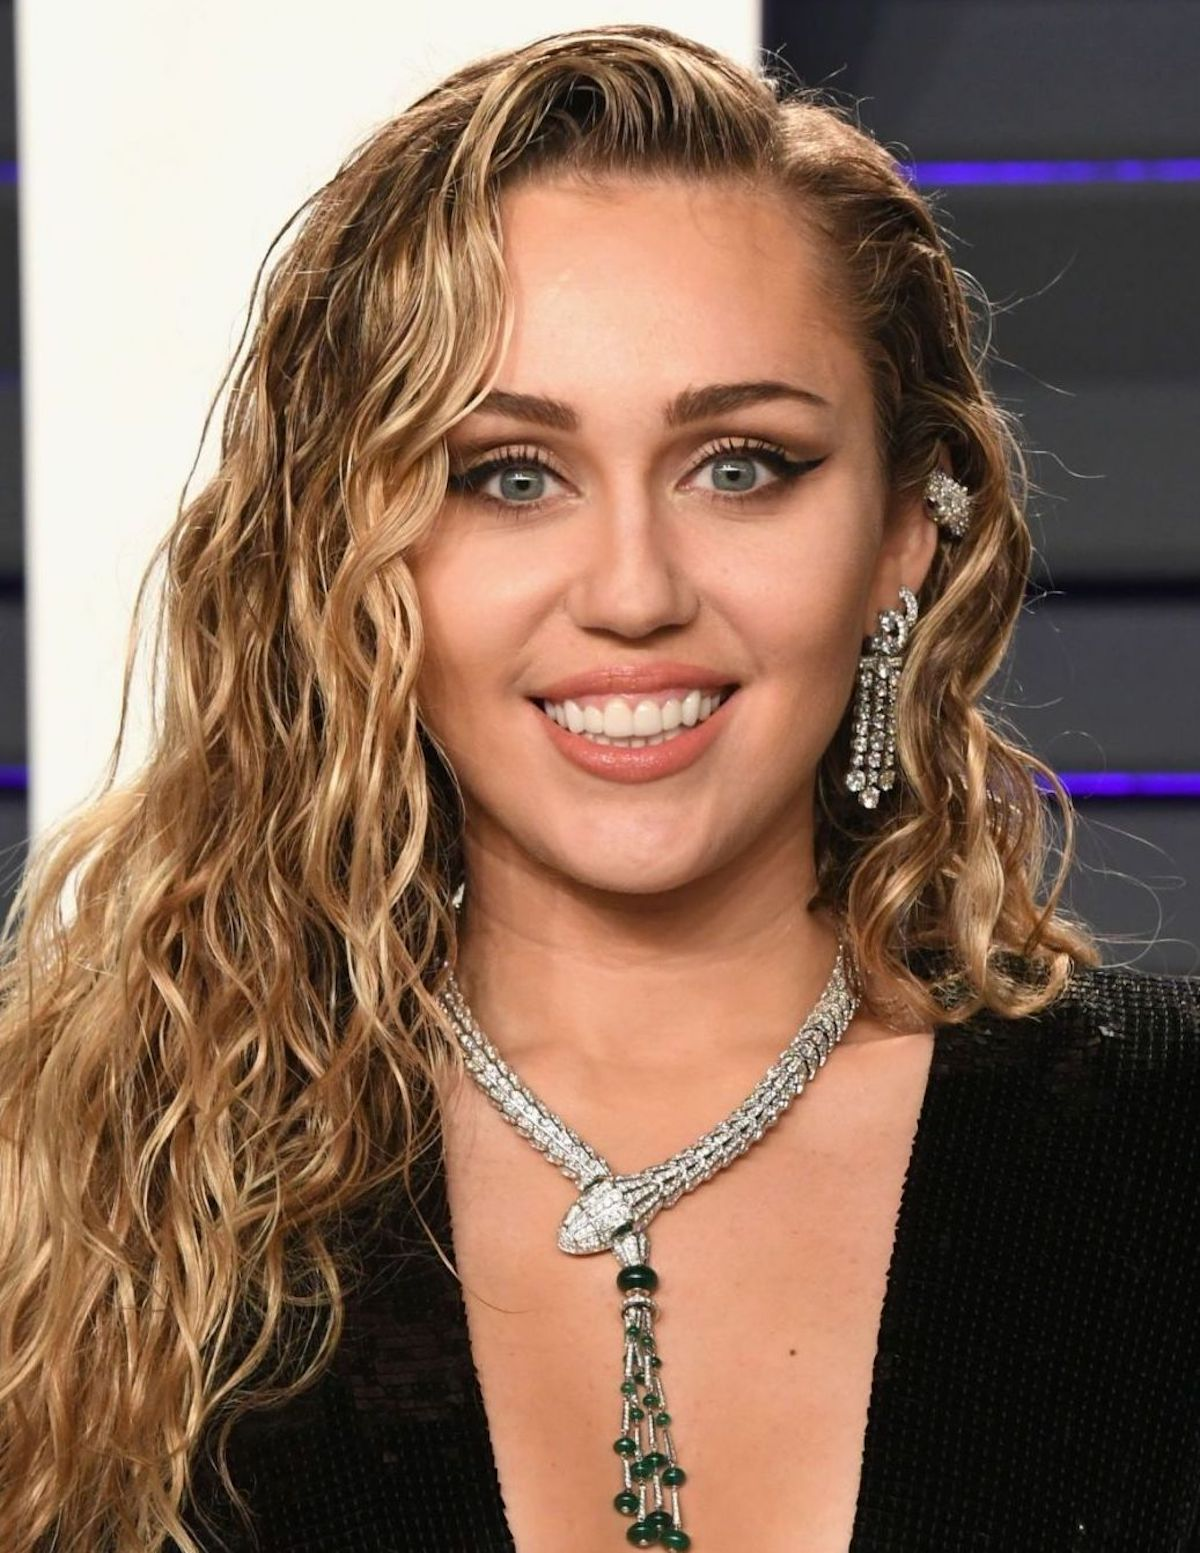 Miley Cyrus nudes (91 foto and video), Sexy, Hot, Boobs, swimsuit 2015